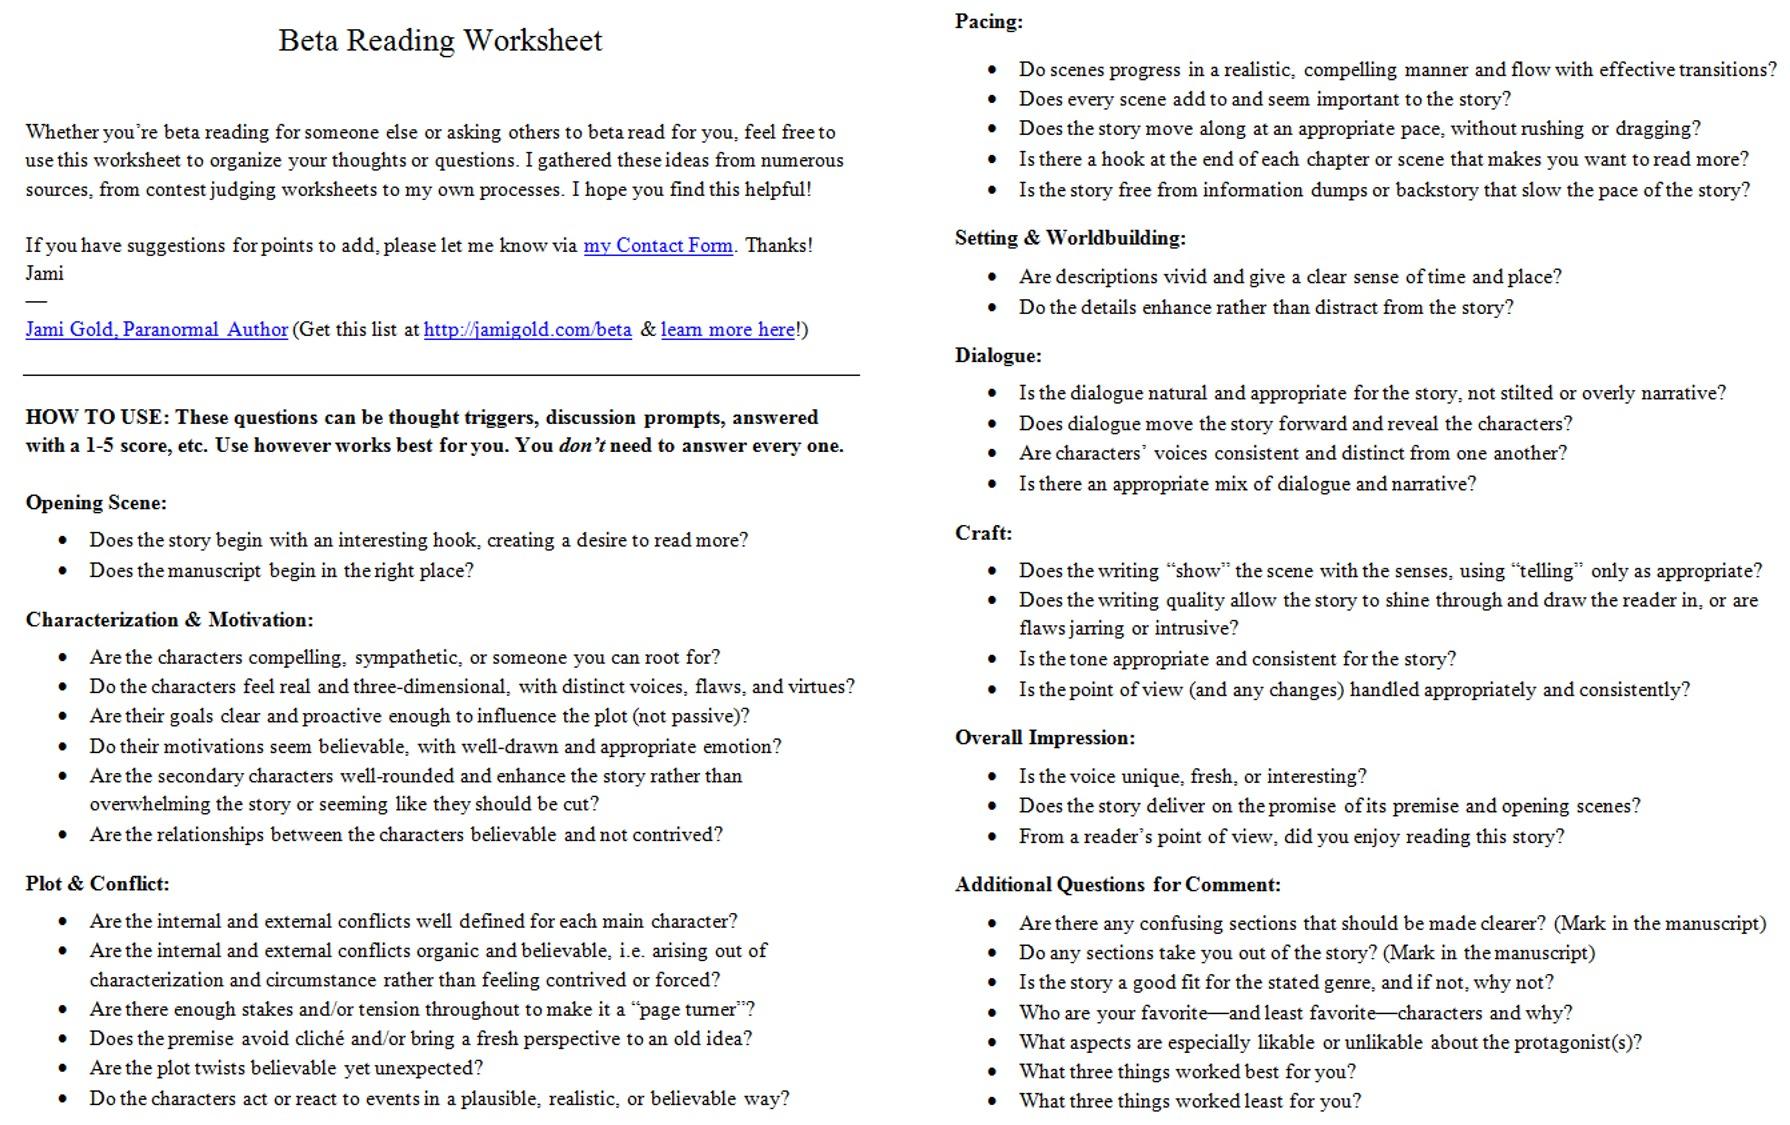 Weirdmailus  Marvelous Worksheets For Writers  Jami Gold Paranormal Author With Inspiring Screen Shot Of The Twopage Beta Reading Worksheet With Adorable Combine Data From Multiple Worksheets Into One Also Odd Or Even Worksheet In Addition Algebra  Systems Of Equations Worksheet And Multiplying Decimals By Powers Of  Worksheet As Well As Adding Mixed Numbers With Unlike Denominators Worksheets Additionally Documentary Analysis Worksheet From Jamigoldcom With Weirdmailus  Inspiring Worksheets For Writers  Jami Gold Paranormal Author With Adorable Screen Shot Of The Twopage Beta Reading Worksheet And Marvelous Combine Data From Multiple Worksheets Into One Also Odd Or Even Worksheet In Addition Algebra  Systems Of Equations Worksheet From Jamigoldcom